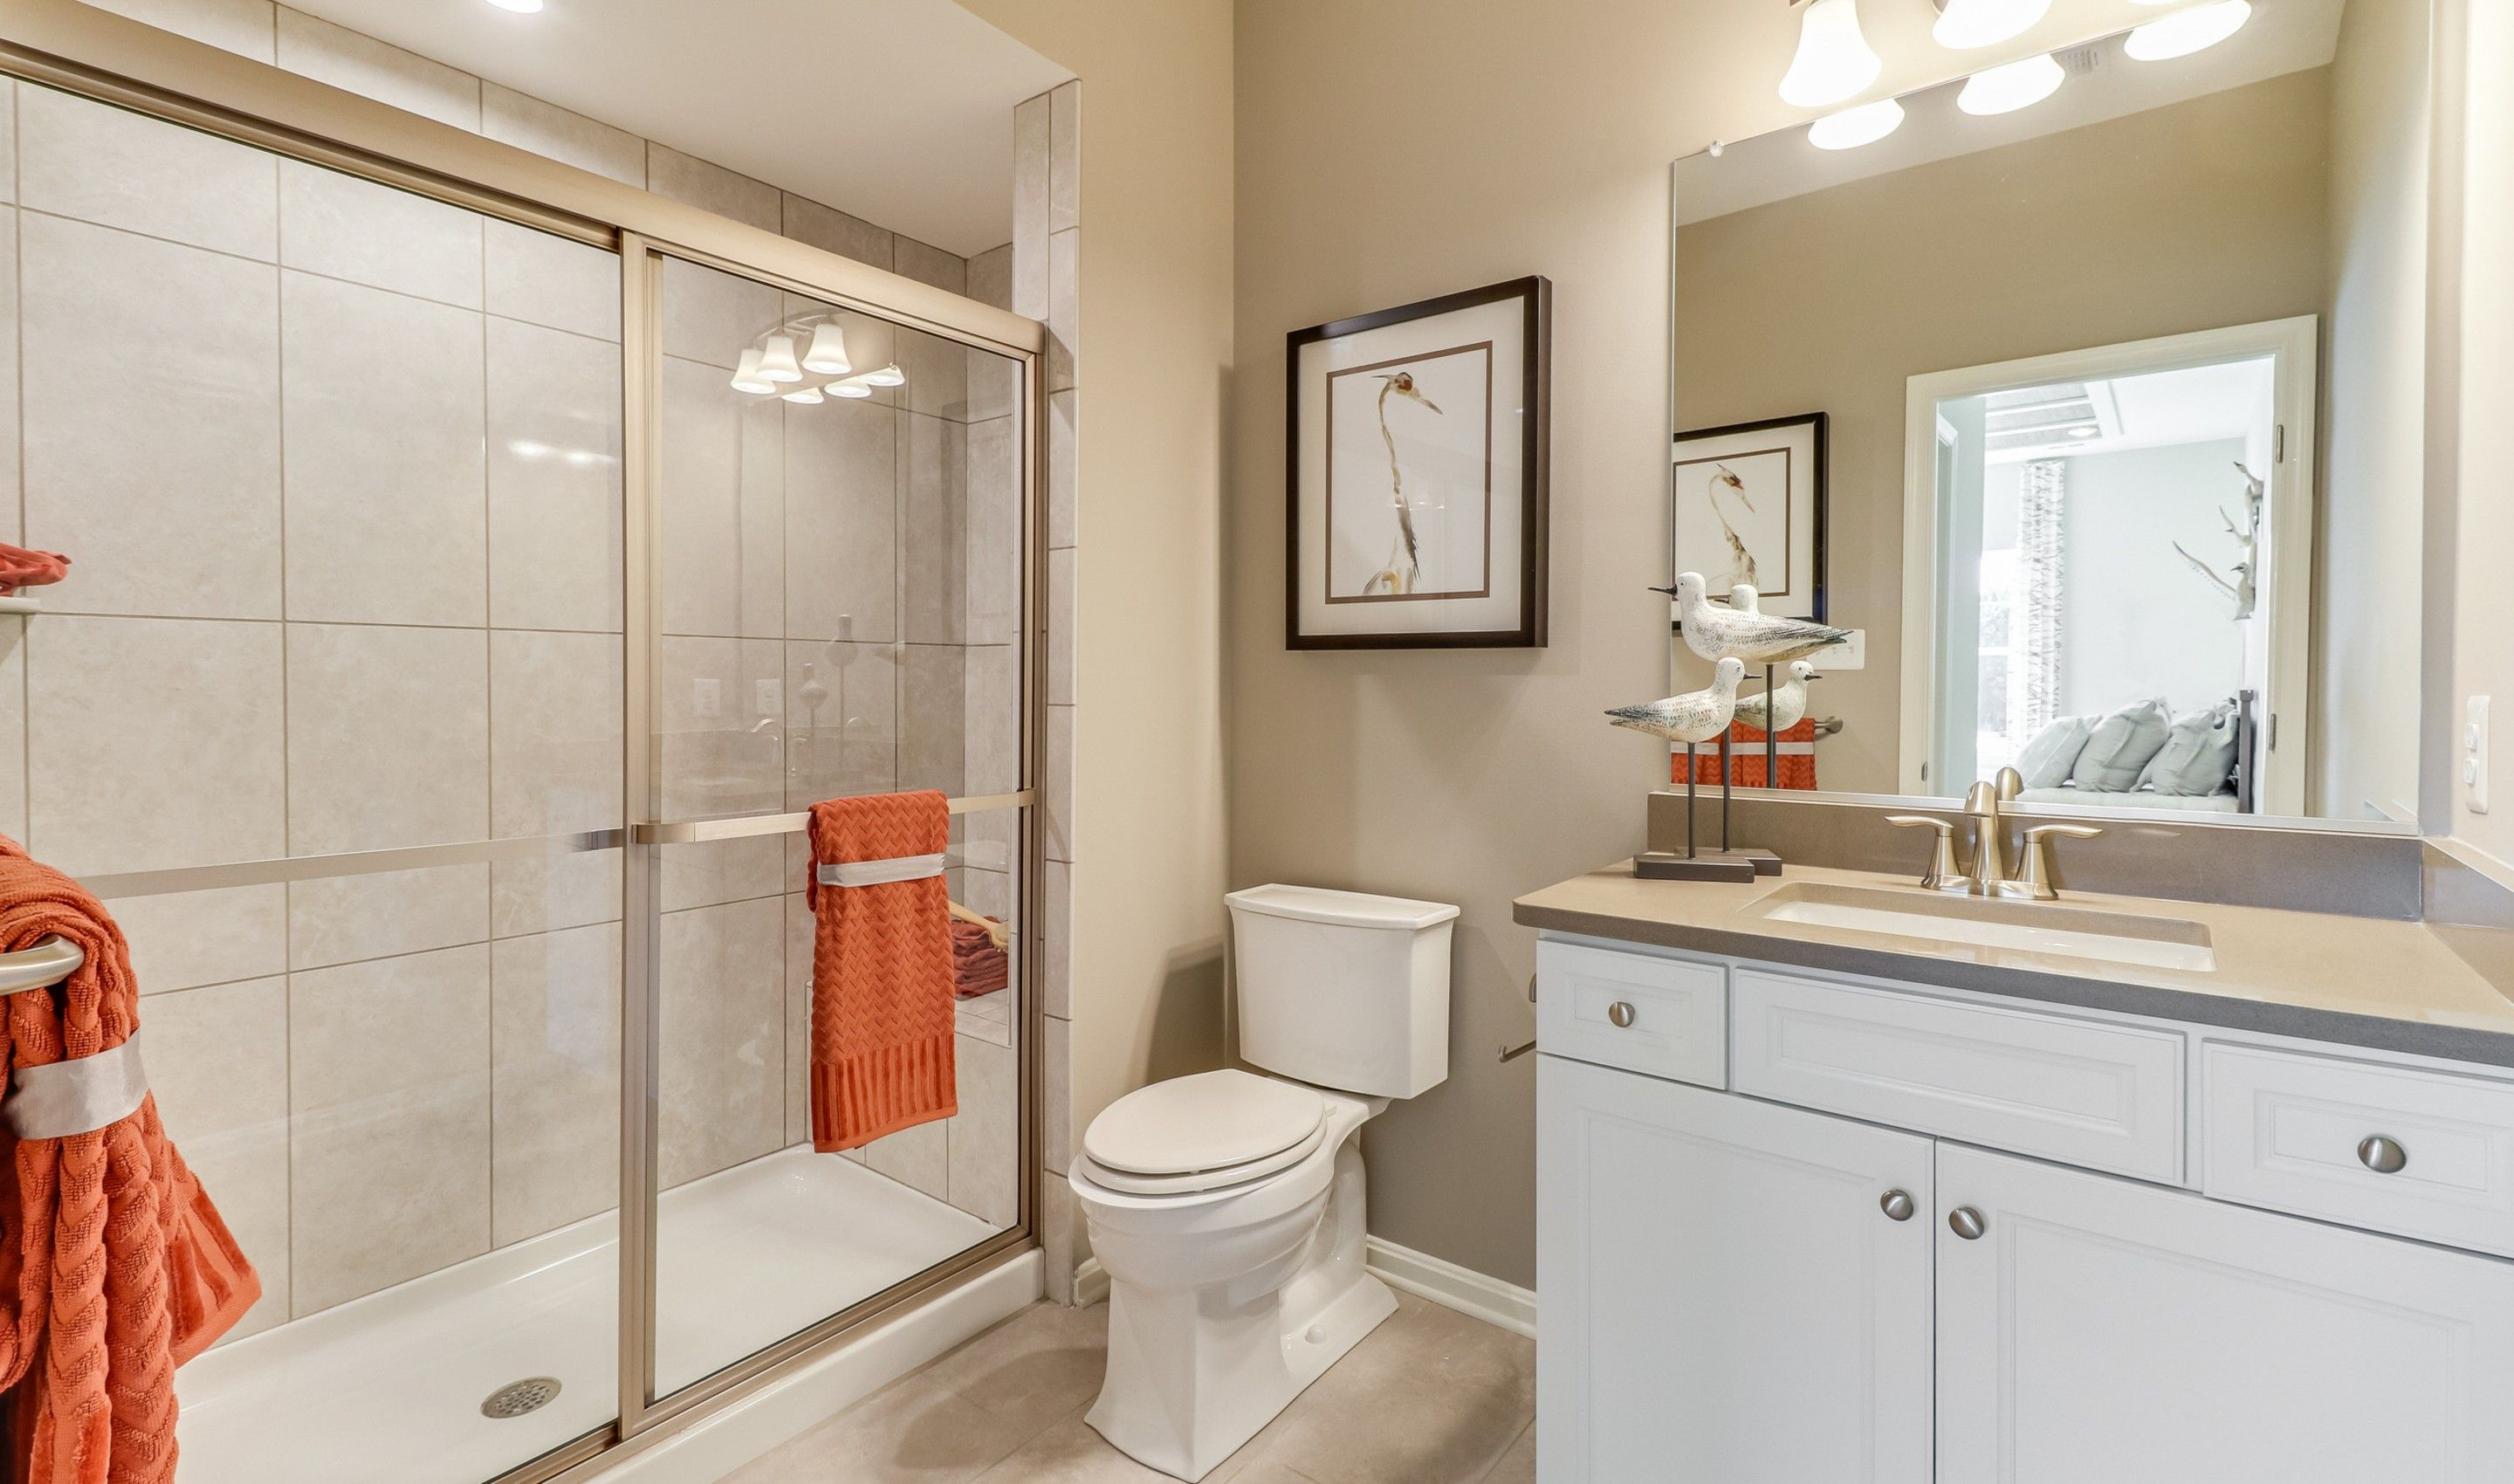 Bathroom featured in the Seacoast By K. Hovnanian® Homes in Sussex, DE